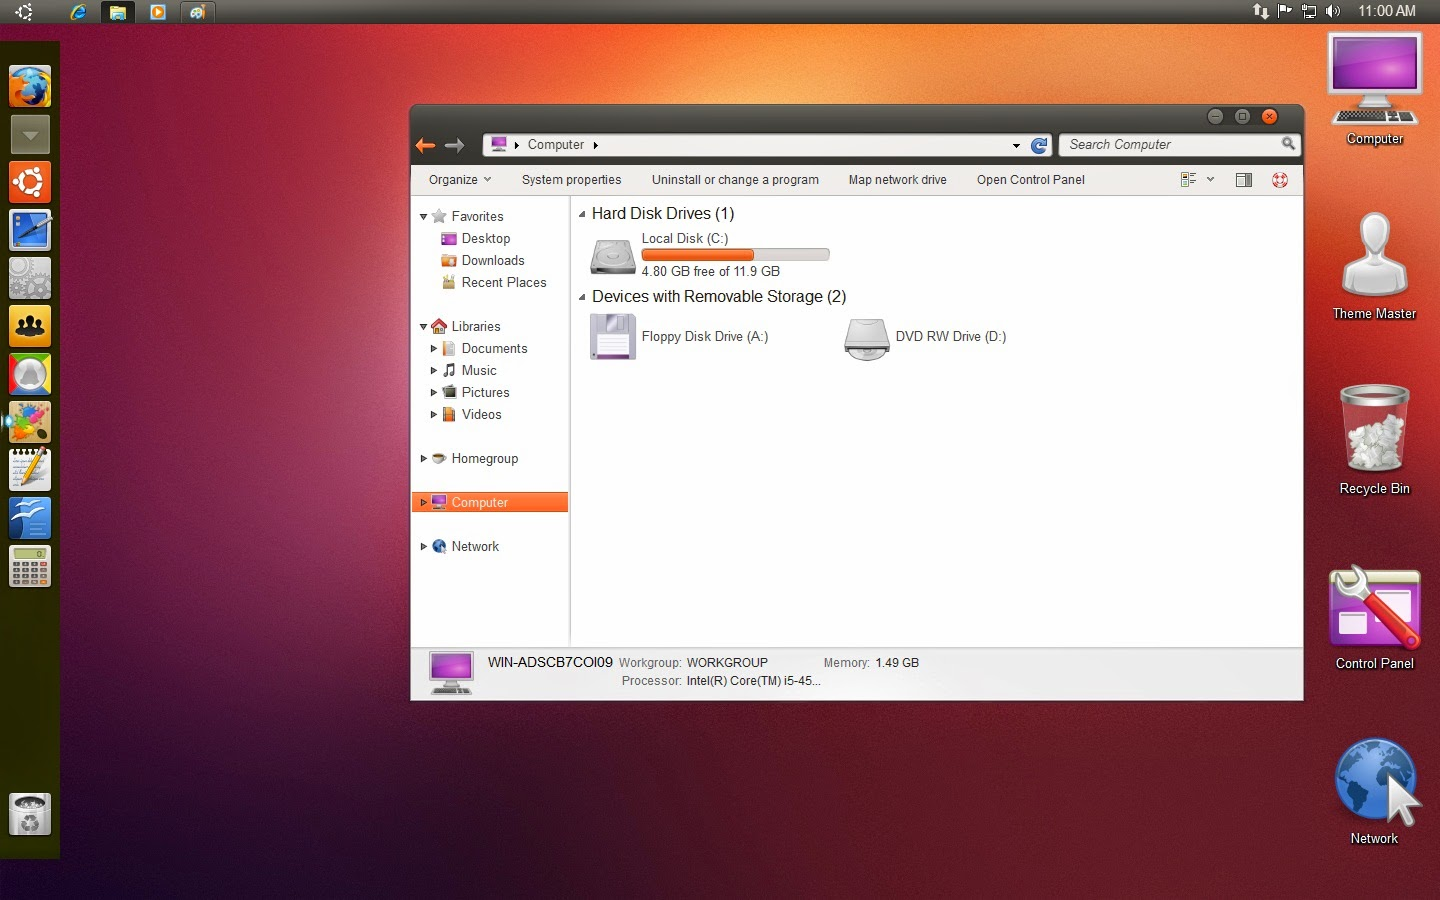 How to install Ubuntu on Google Chromebook